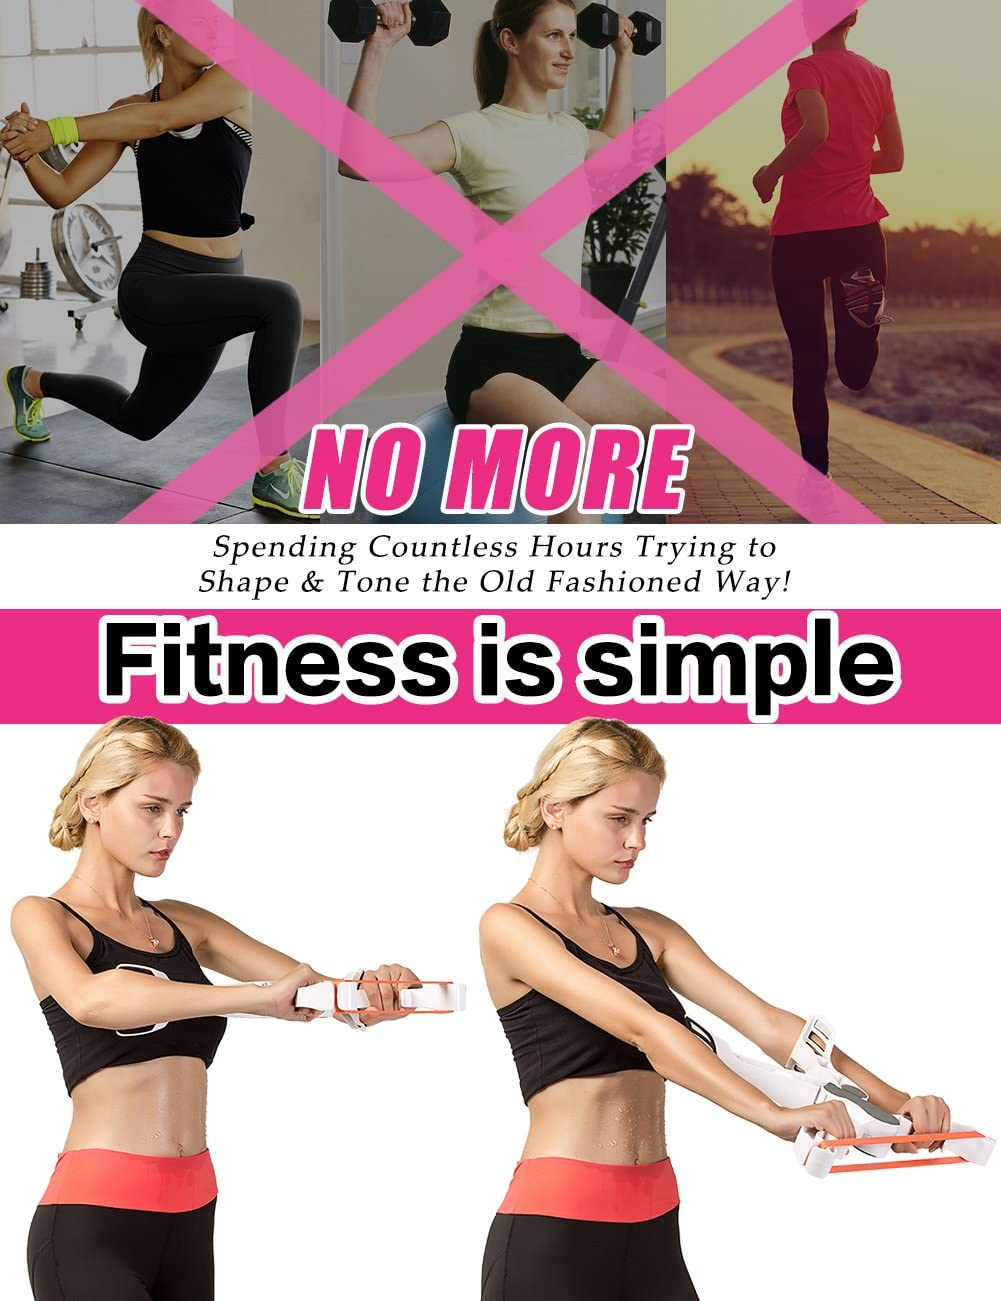 Wonder Arms Workout System - Home Workouts Arm Exercise with 3 Resistance Training Bands Martiount Upper Arm Exerciser Strength Training Equipment Arm Machine Workout Tone Arm and Chest 3 Resistance Band System Arm Weights for Women and Men